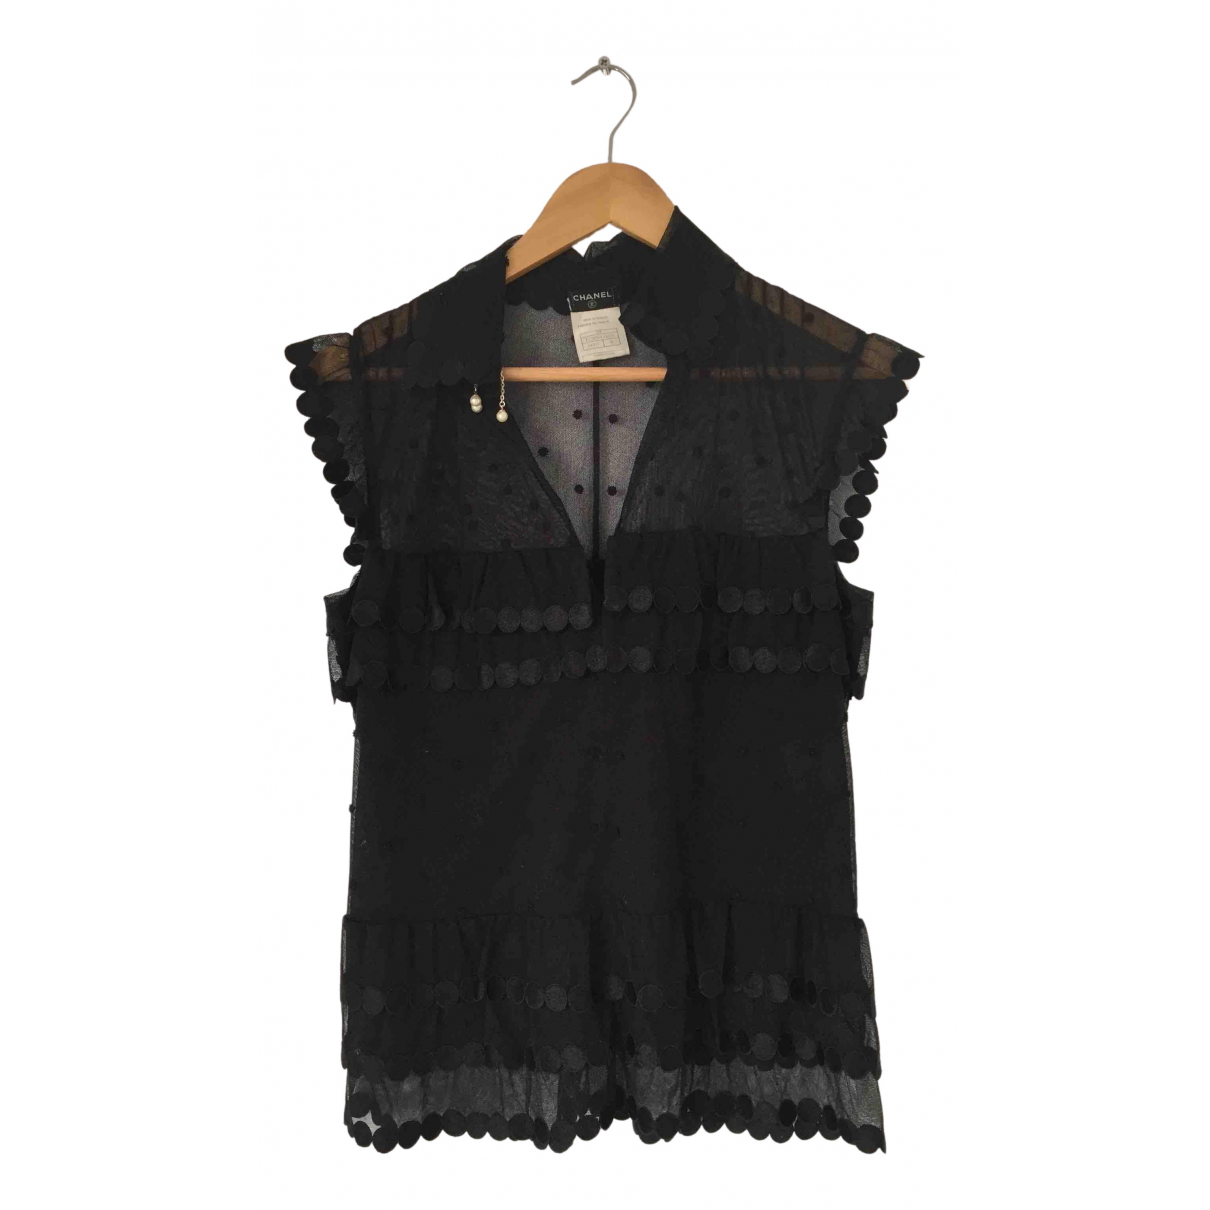 Chanel \N Black Cotton  top for Women 36 FR